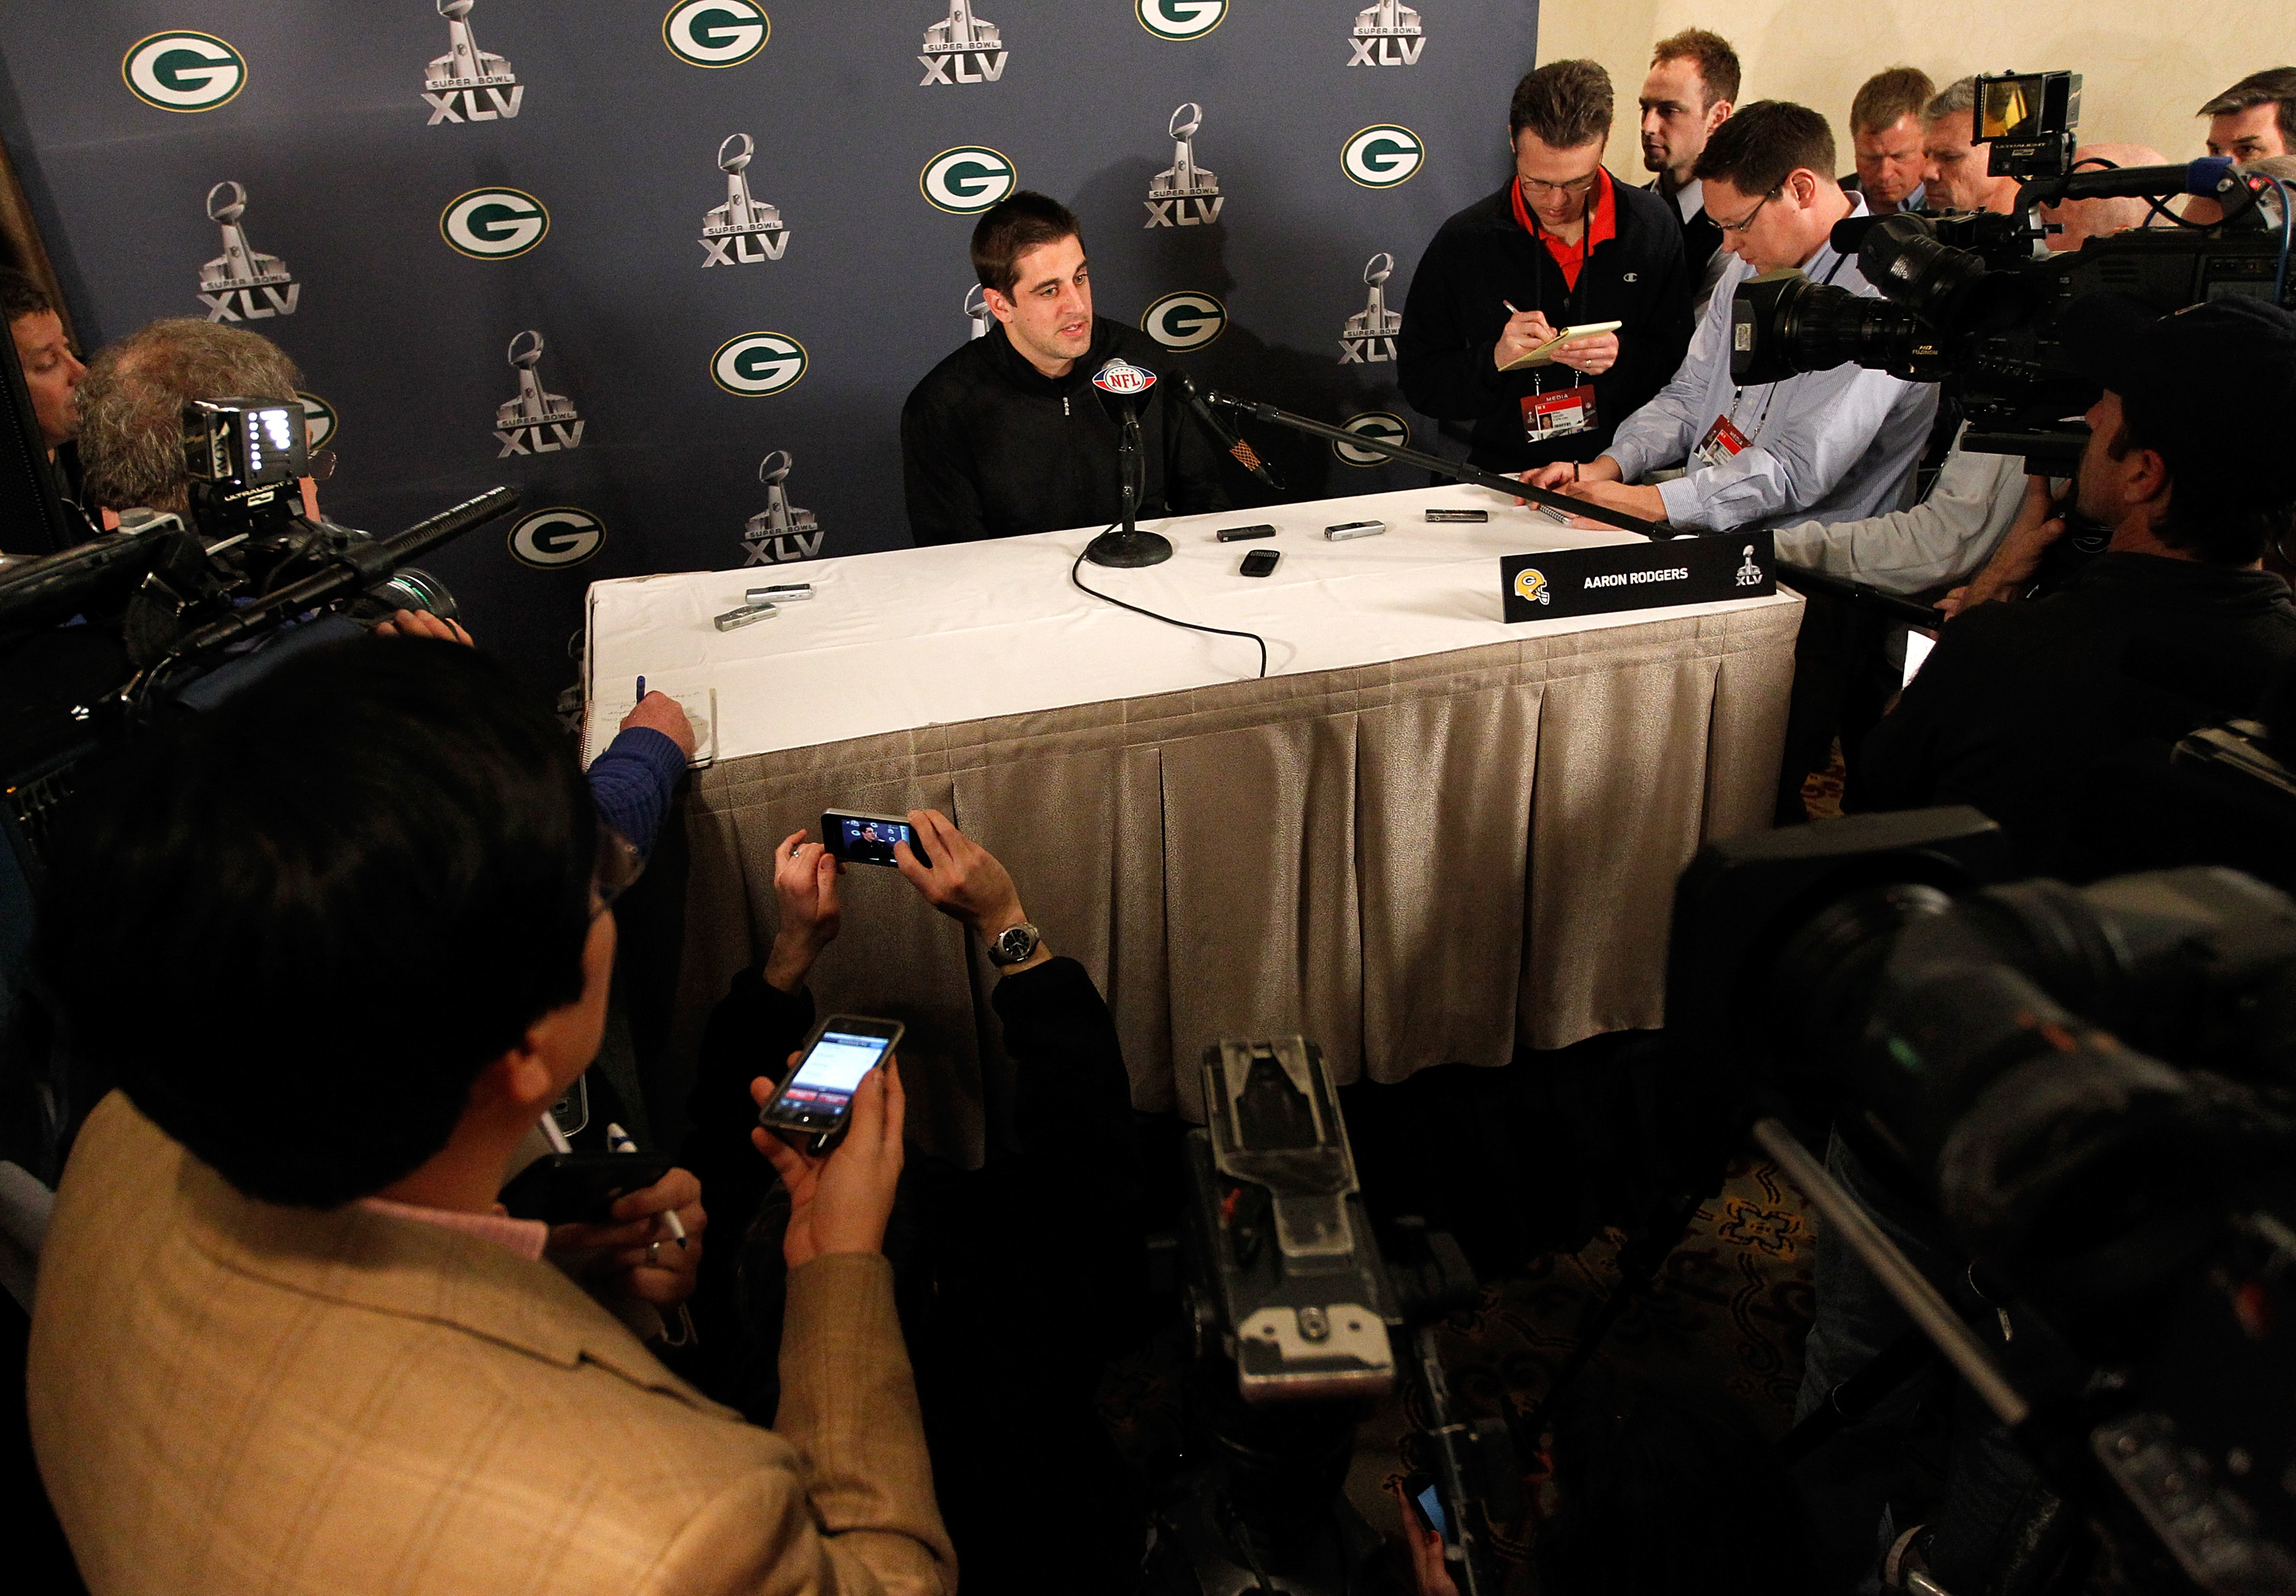 IRVING, TX - JANUARY 31:  Quarterback Aaron Rodgers #12 of the Green Bay Packers talks to the media on January 31, 2011 in Irving, Texas. The Green Bay Packers will play the Pittsburgh Steelers in Super Bowl XLV on February 6, 2011 at Cowboys Stadium in A